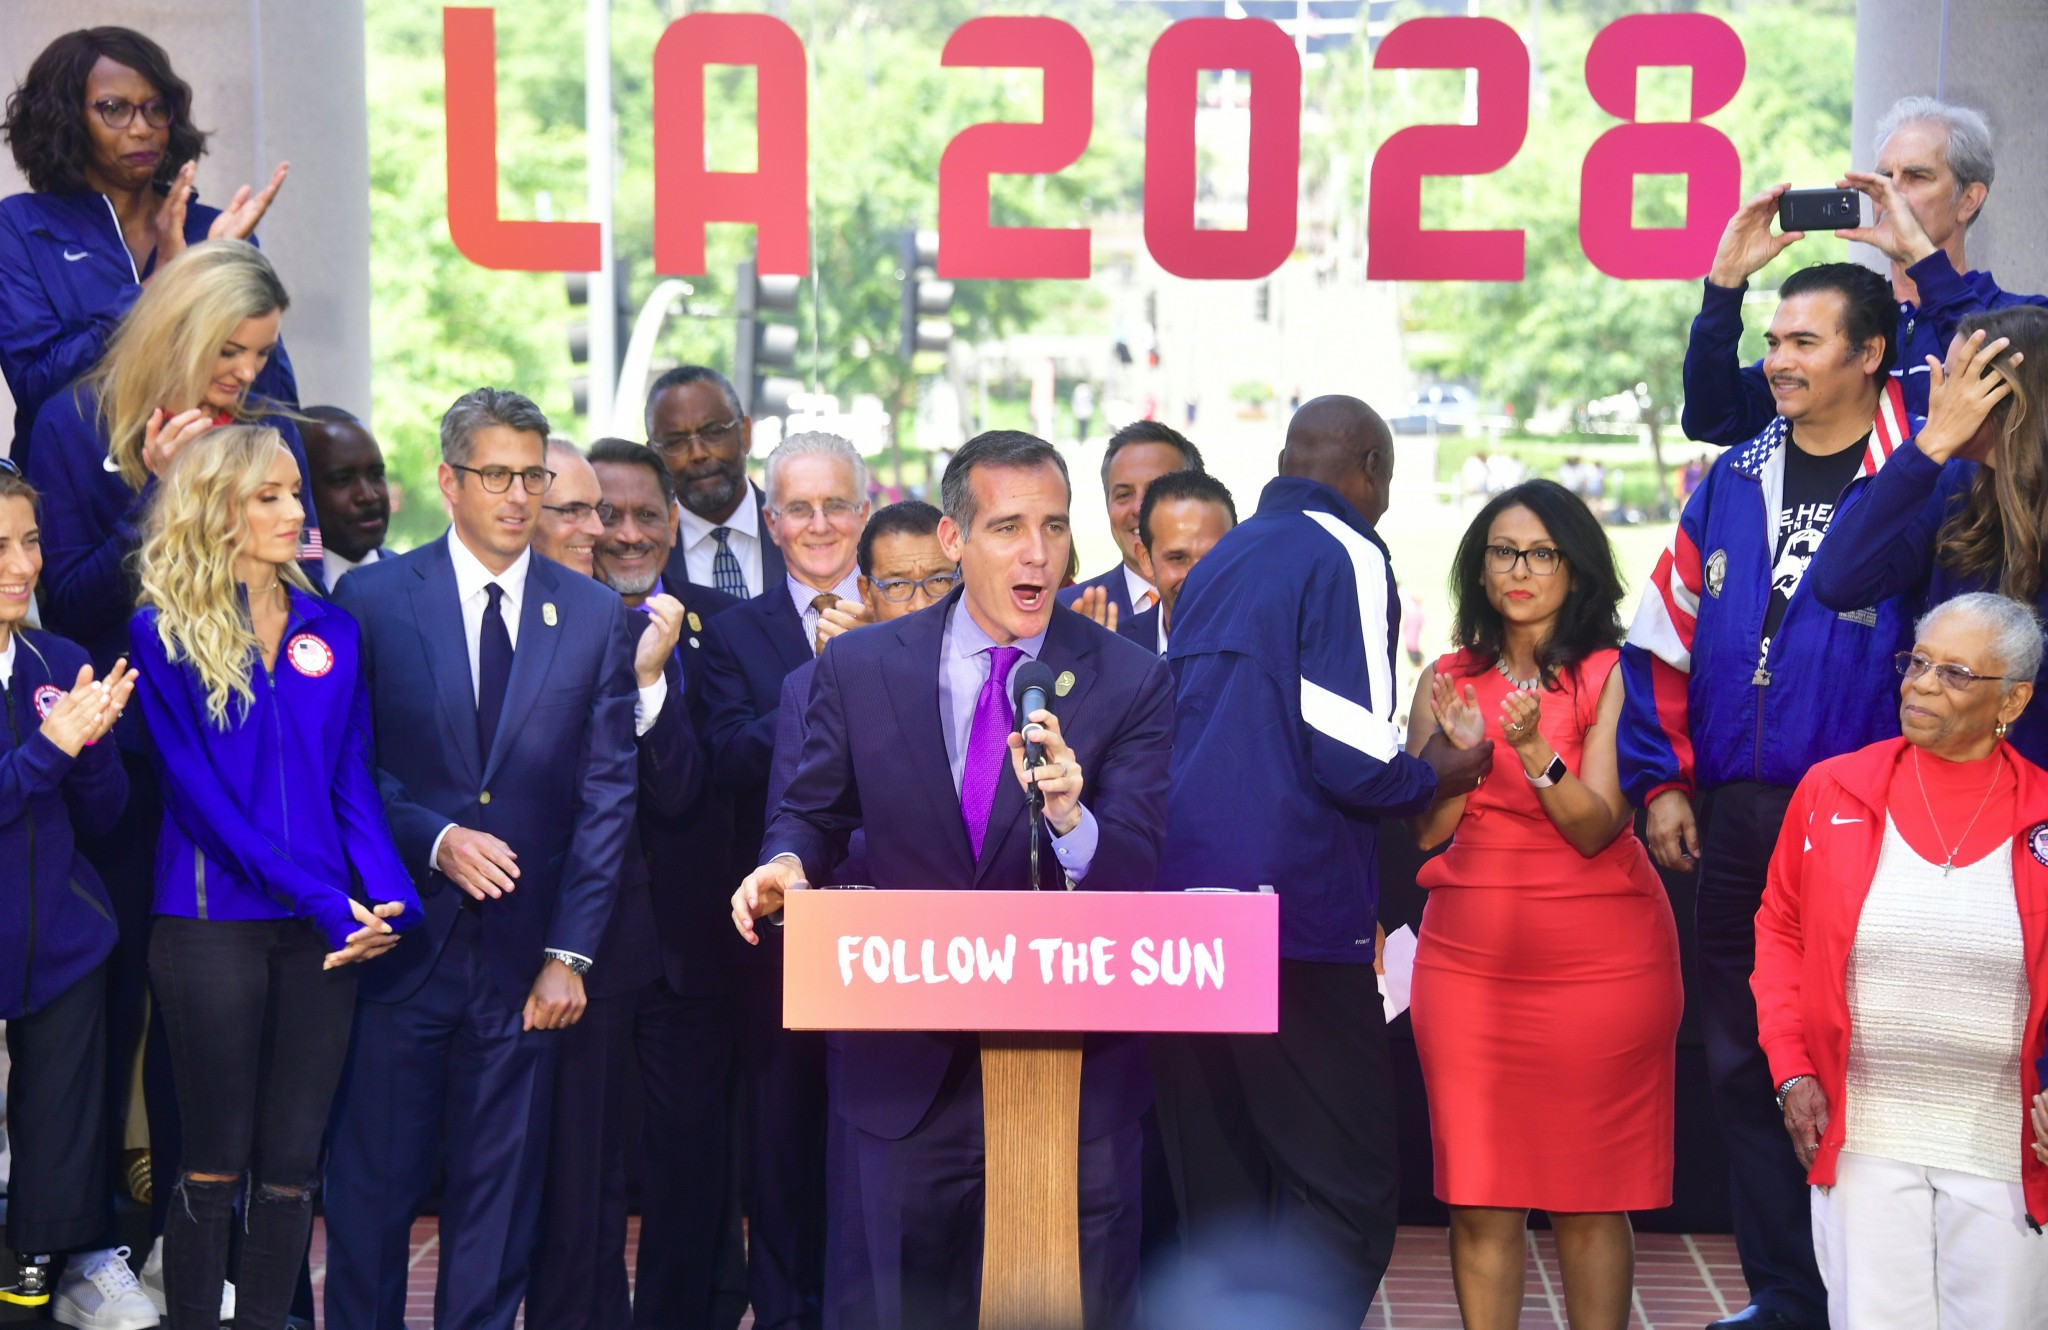 Los Angeles has agreed to host the later Olympics and Paralympics in 2028 ©Getty Images